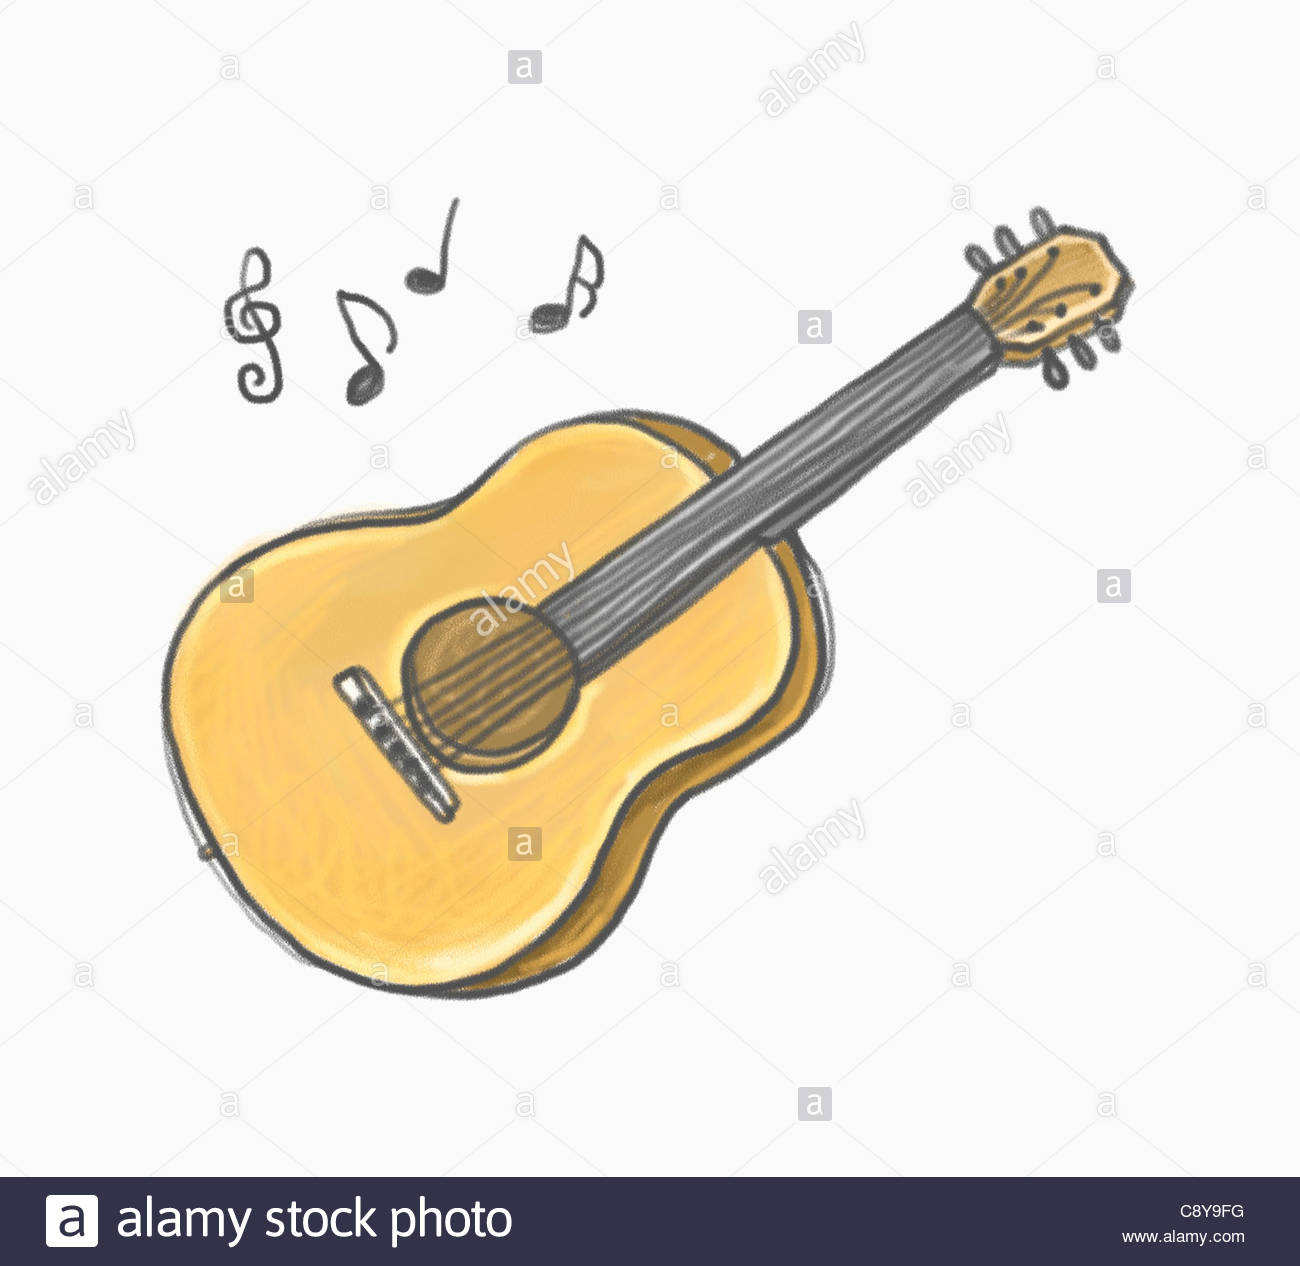 1300x1266 Drawing Of A Guitar Stock Photo 39938180